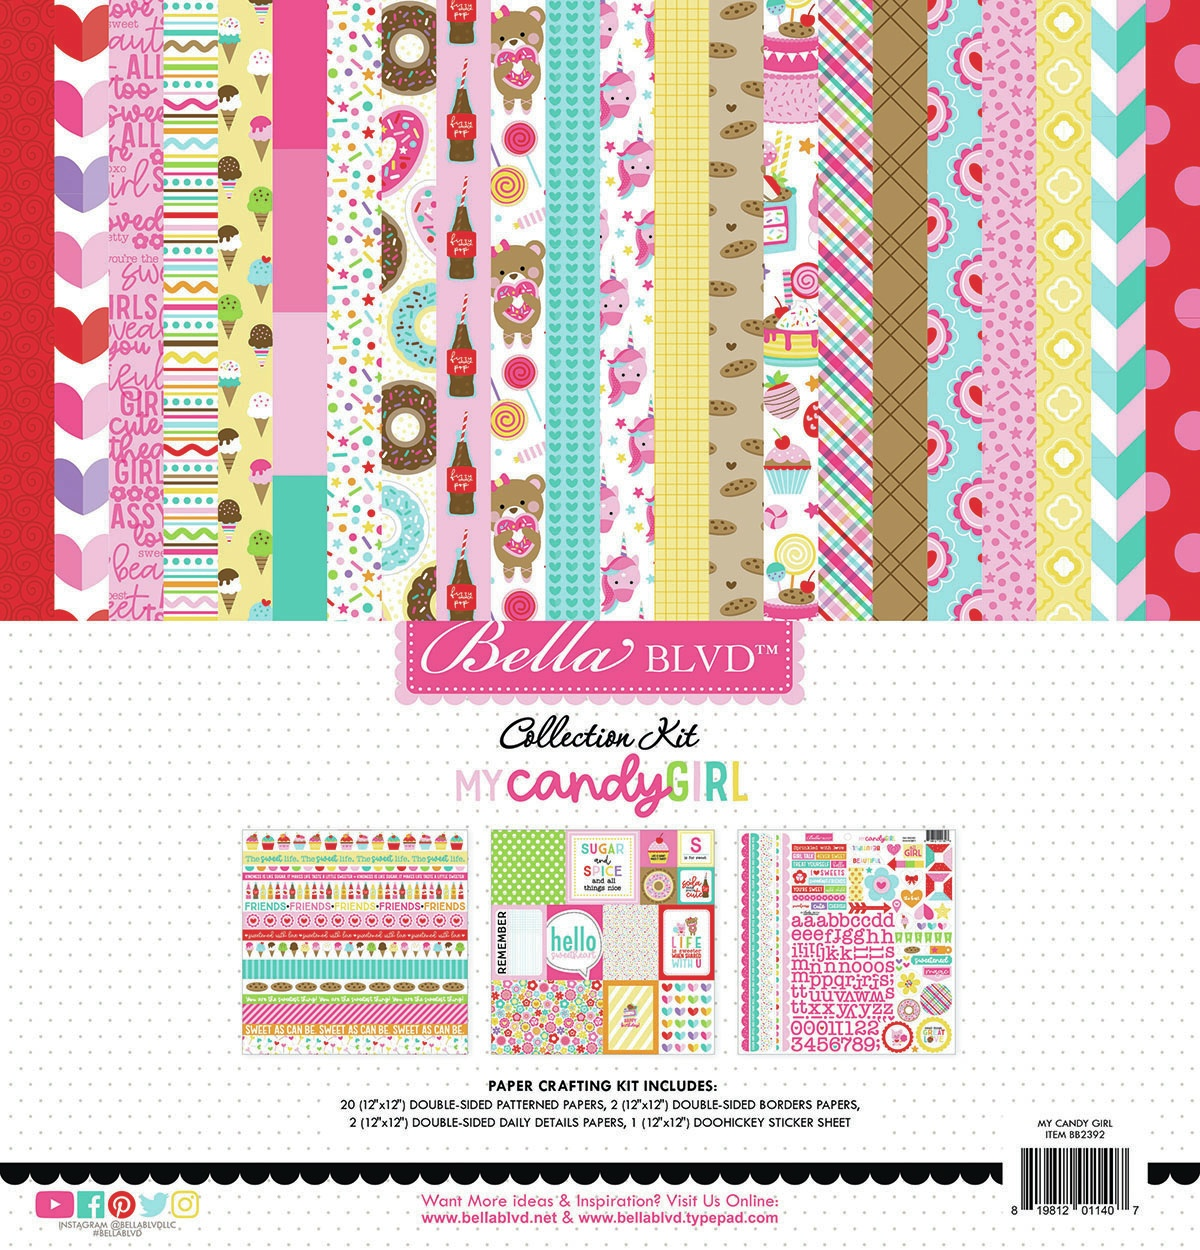 Bella Blvd Collection Kit 12X12-My Candy Girl